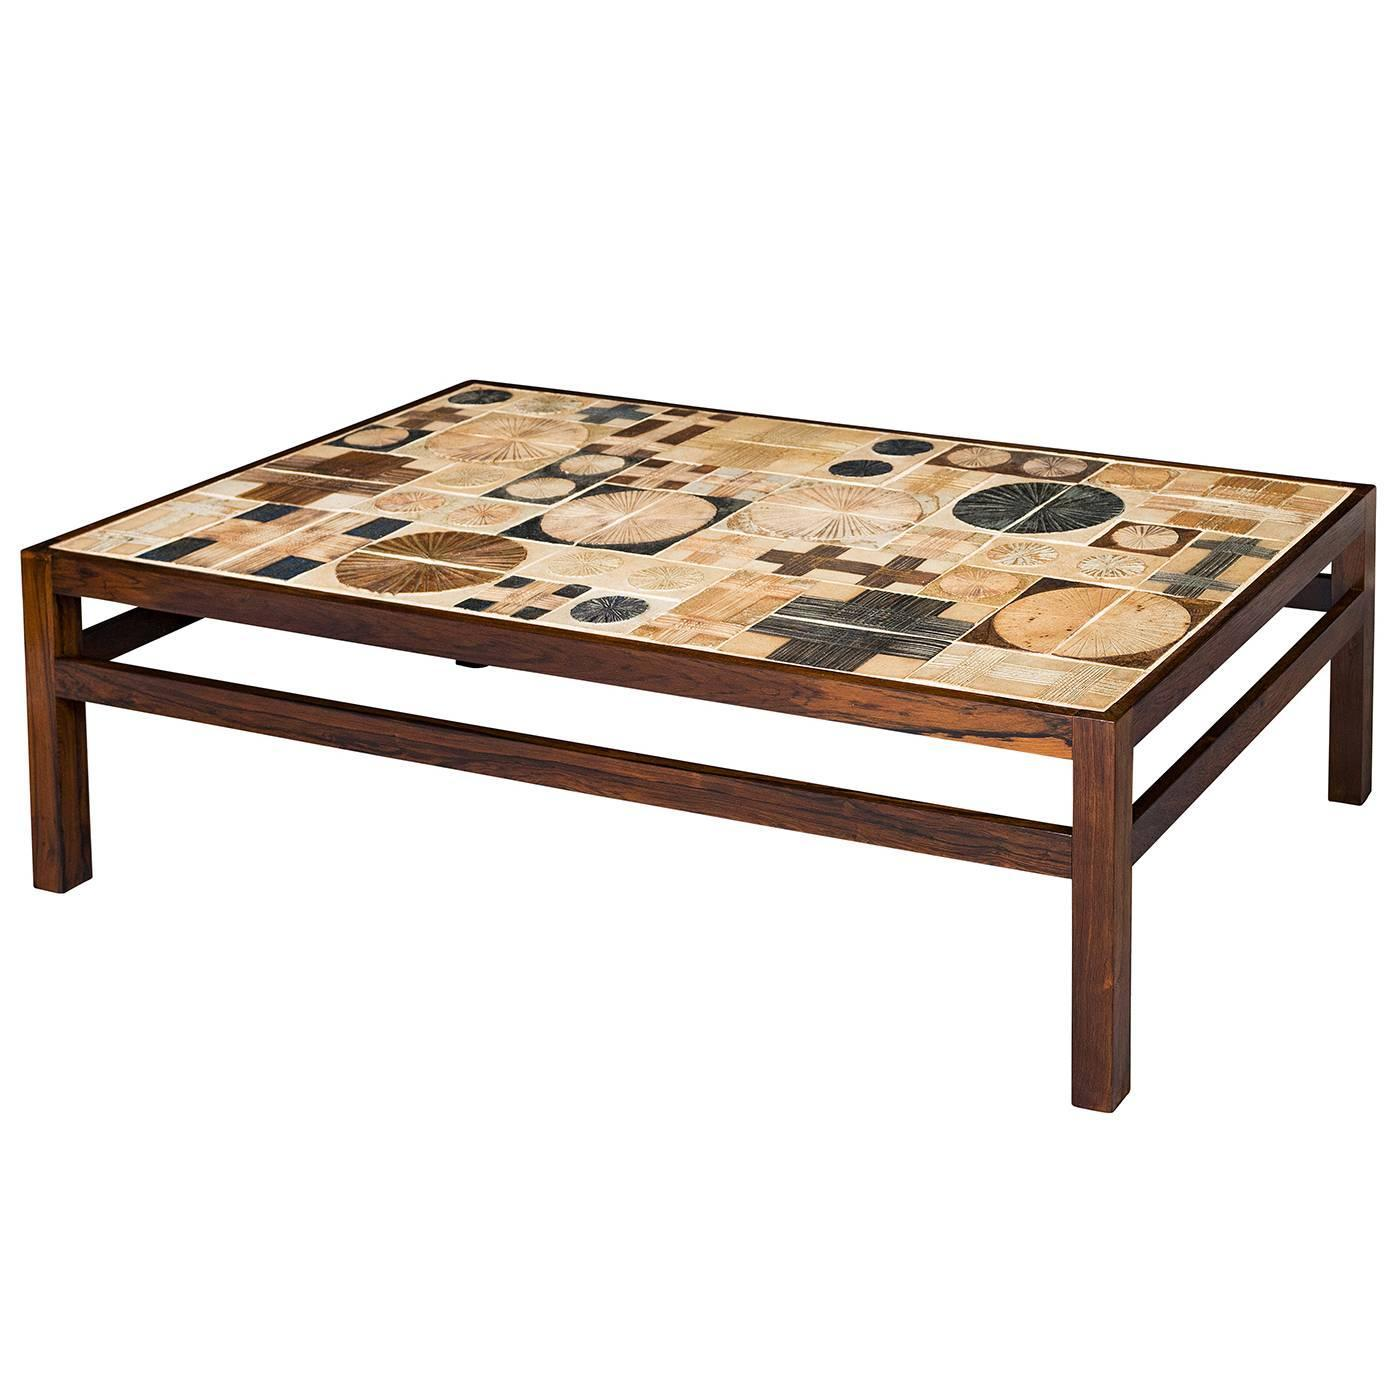 Tue poulsen tile coffee table for sale at 1stdibs for Tile coffee table